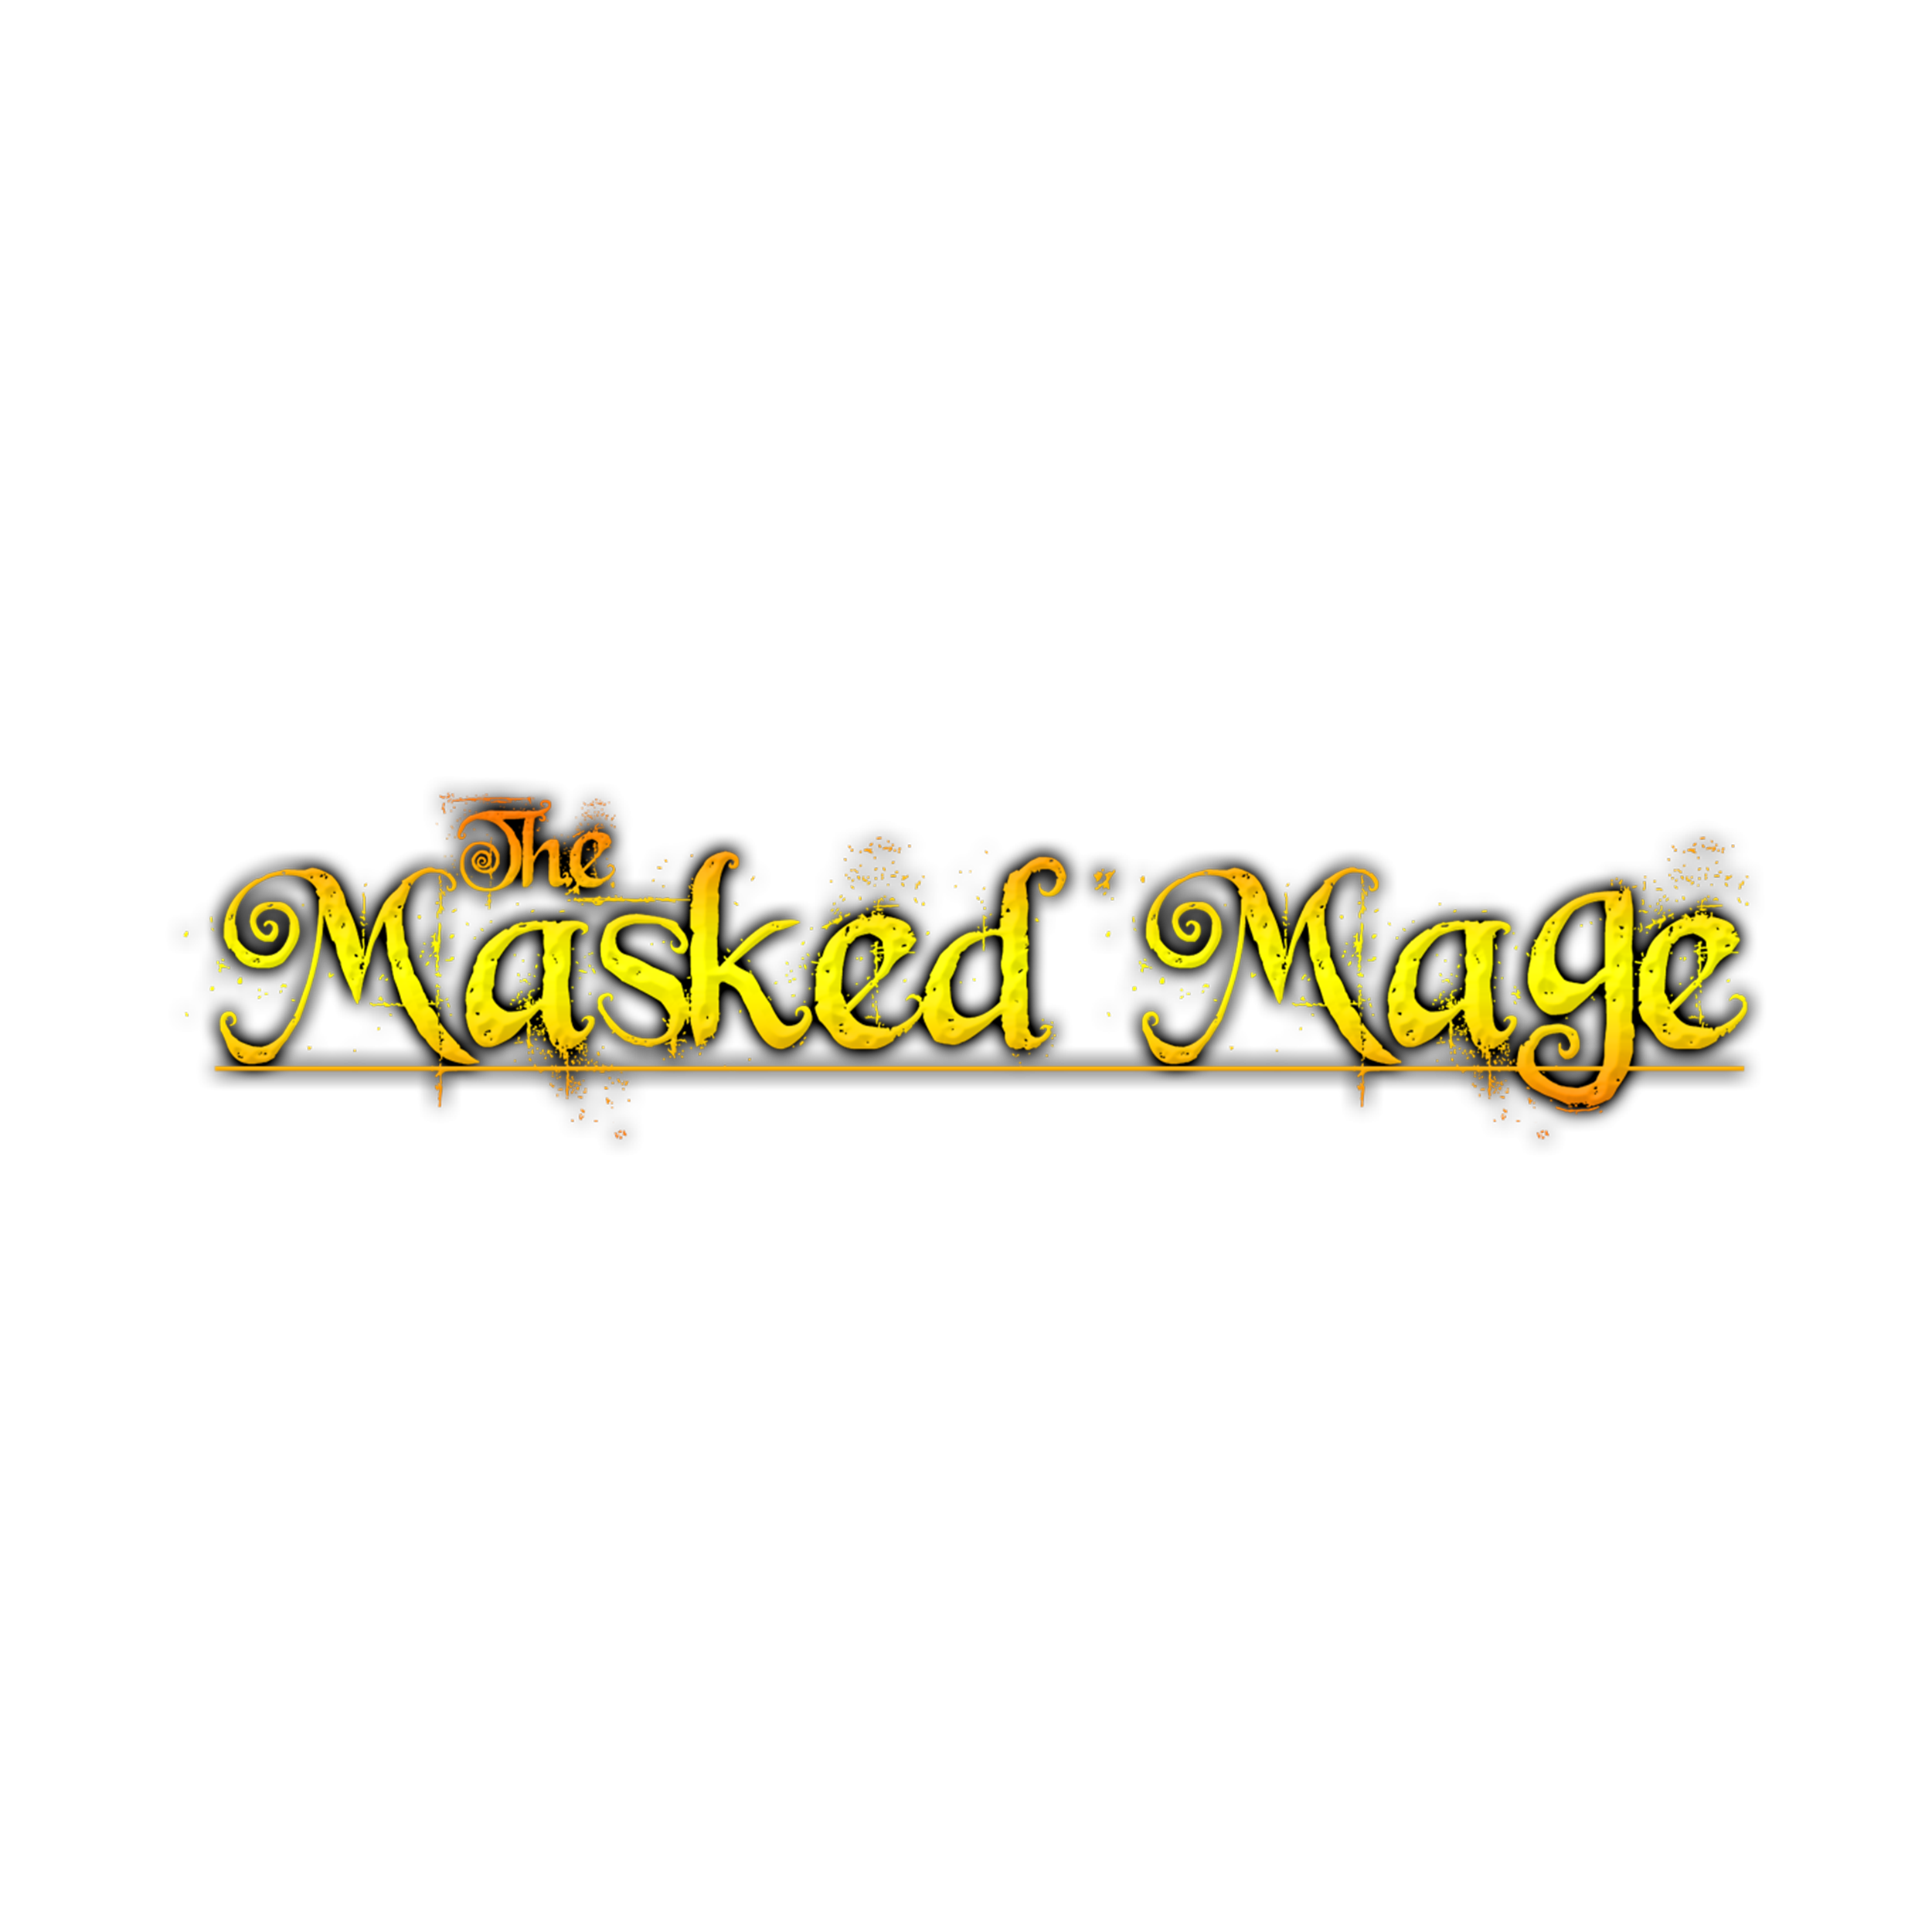 The Masked Mage logo